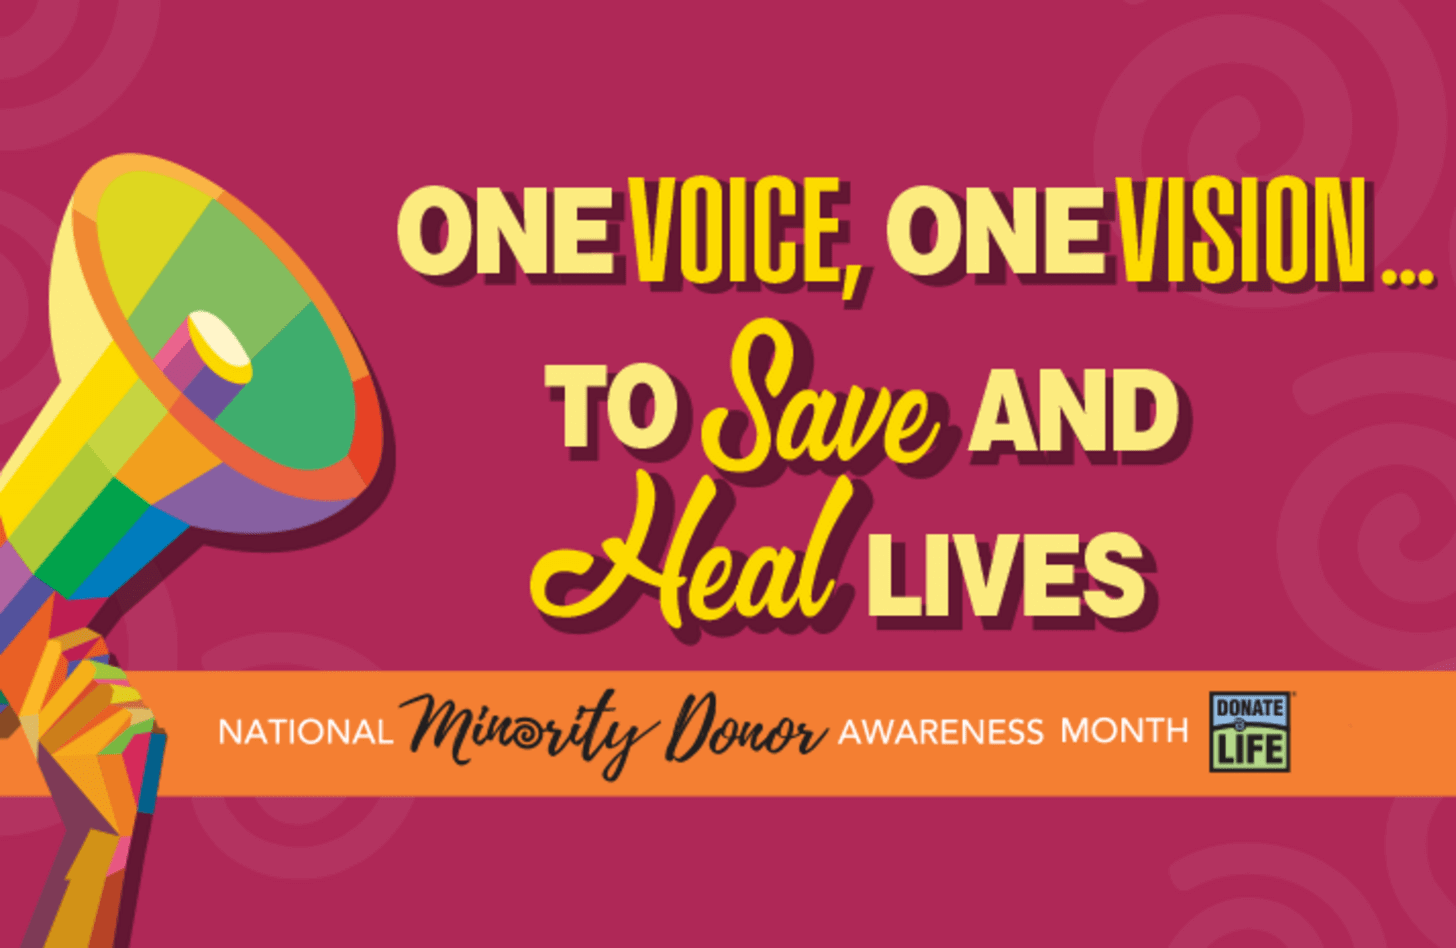 National Minority Donor Awareness Month graphic: One Voice, One Vision To Save and Heal Lives